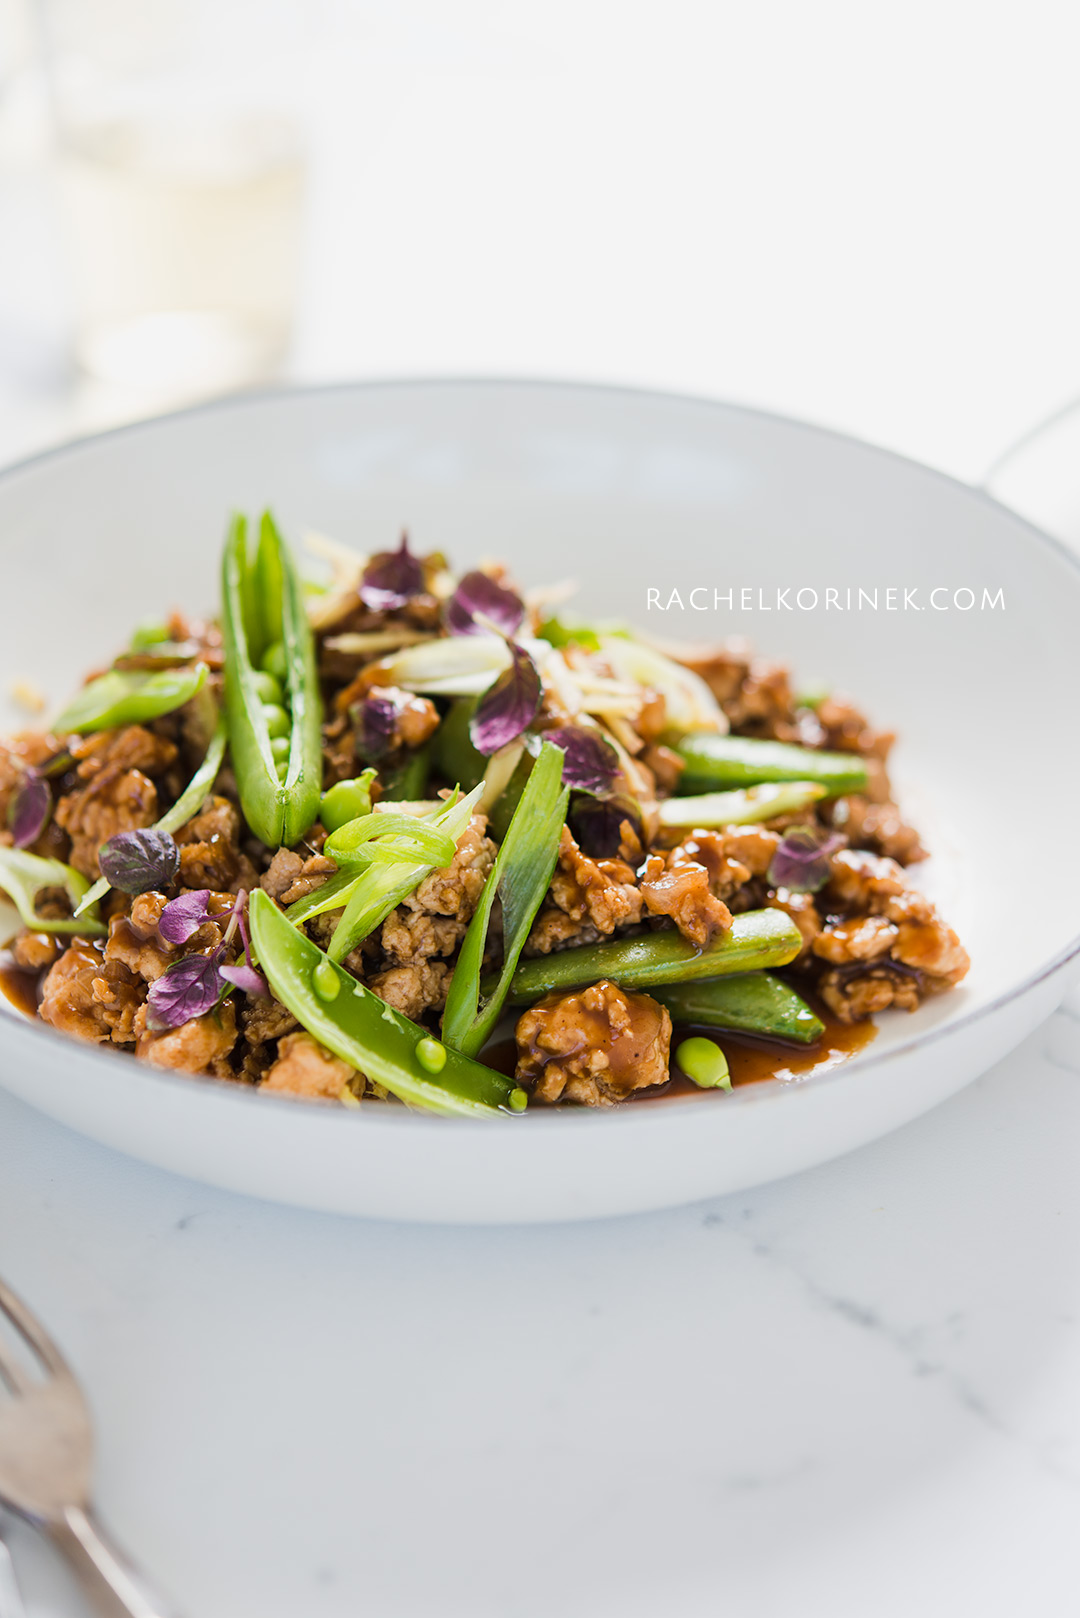 Rachel Korinek Food Photographer | Ground Chicken Black Bean Stir Fry  Click to check out my latest food photography projects.  #twolovesstudio #beautifulcuisine #foodbloggerpro #foodphotography #learnfoodphotography #foodblogger #learnphotography #foodstyling #lightingtips #naturallight #foodphotographer